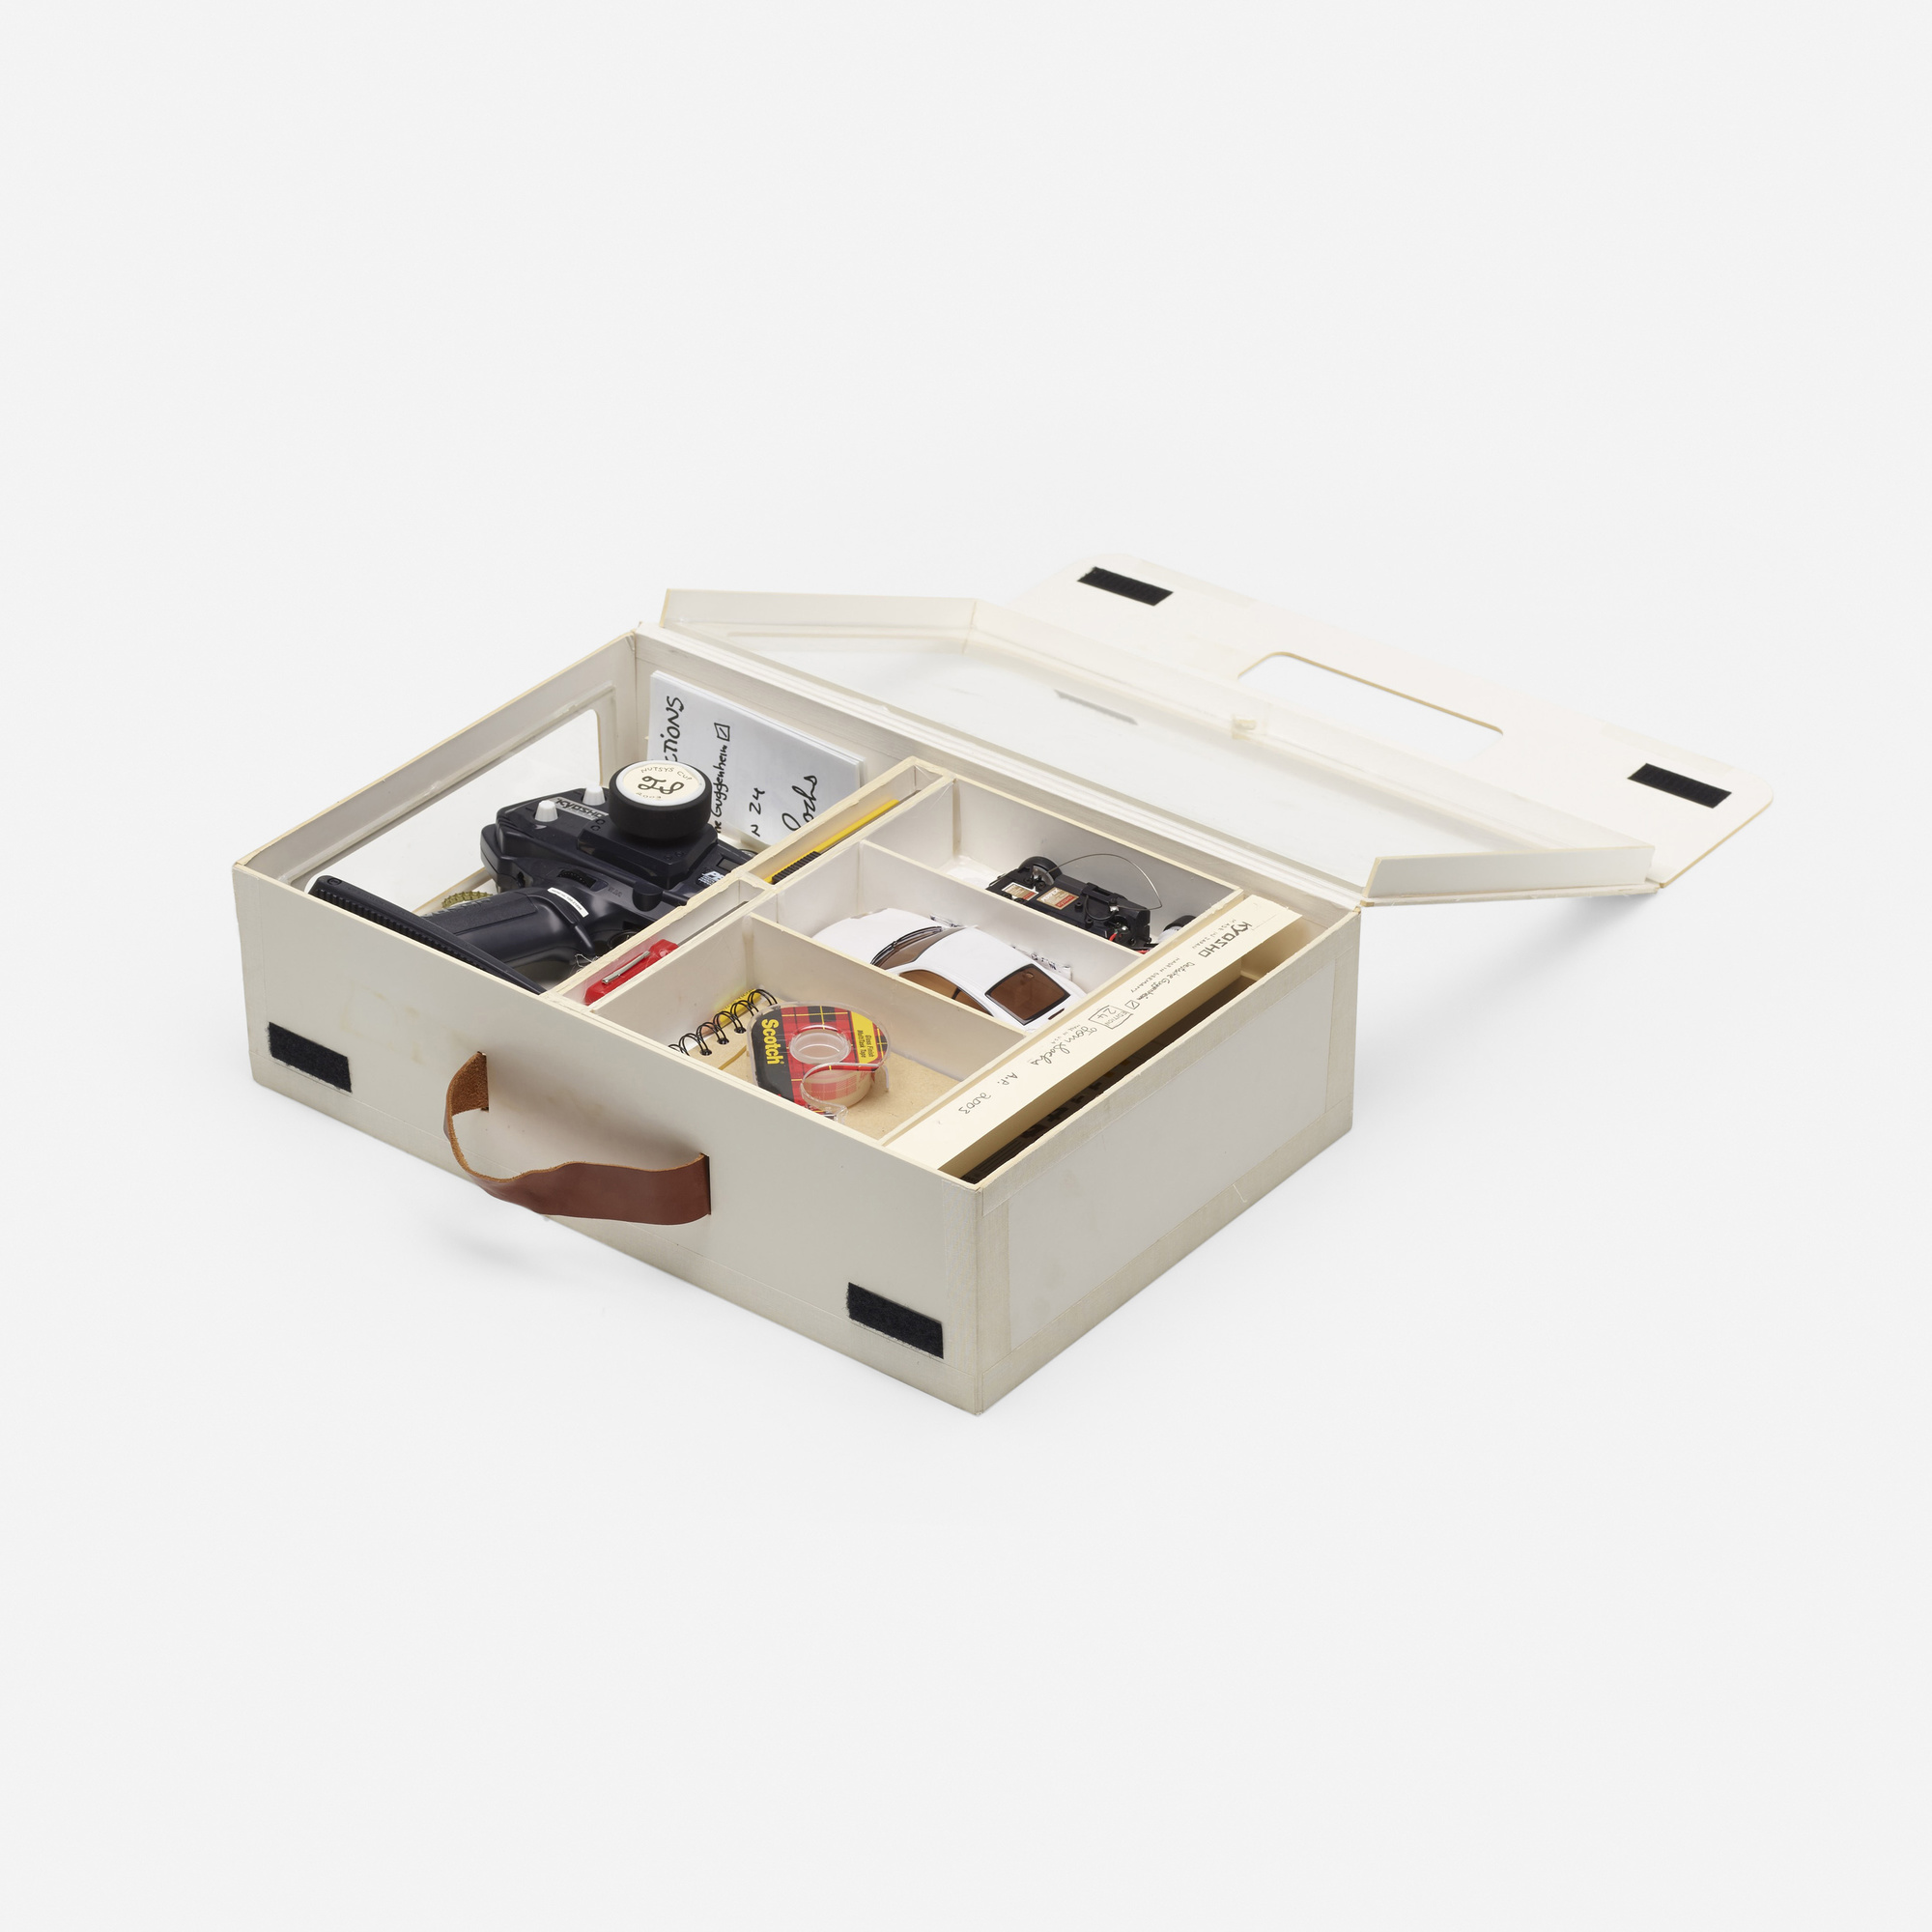 137: Tom Sachs / Deluxe Racing Set (2 of 3)